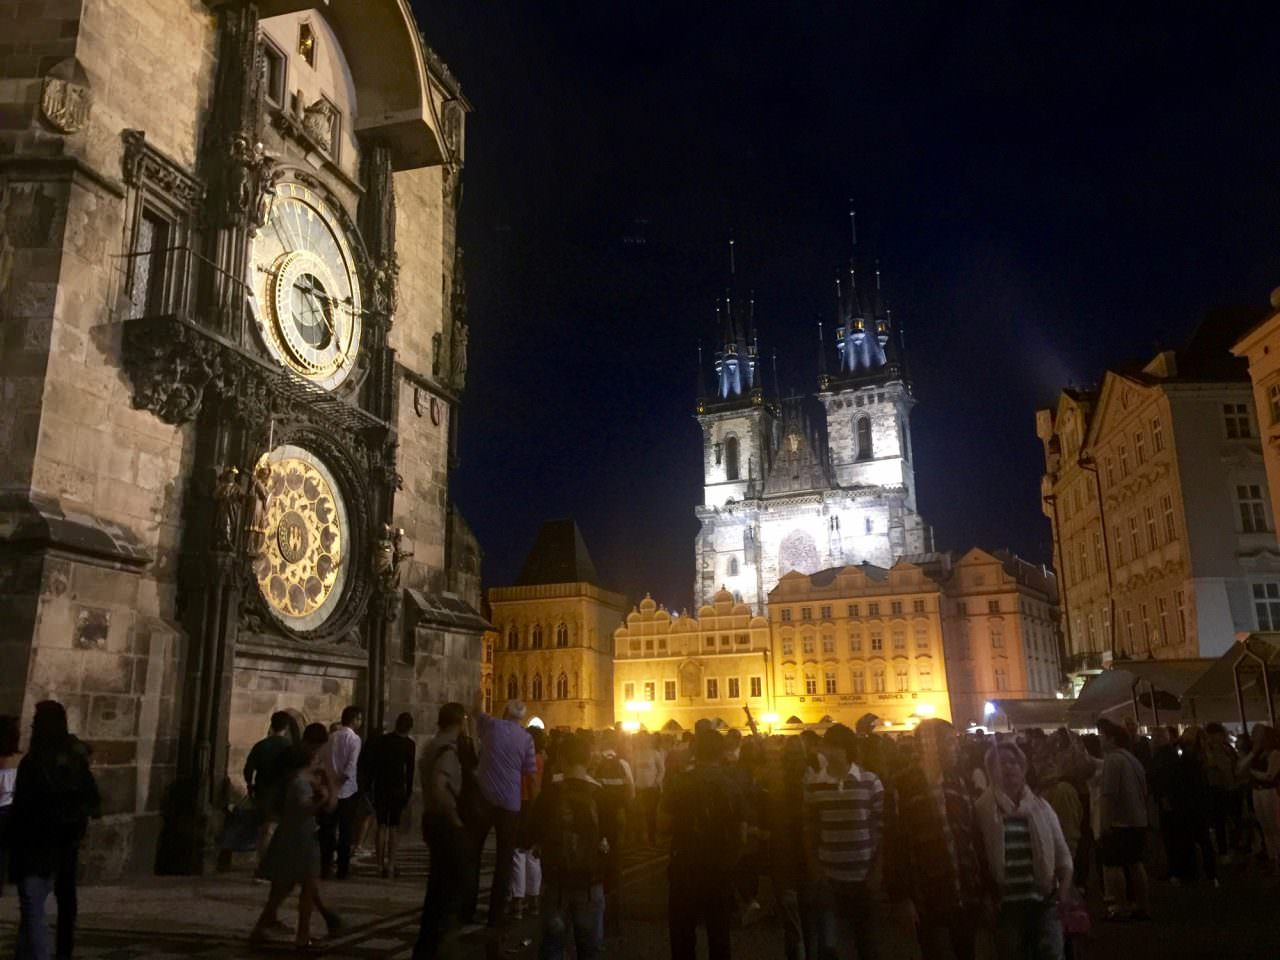 In the Old Town Square, the Prague astronomical clock is a medieval astronomical clock dating from 1410, making it the third-oldest astronomical clock in the world and the oldest one still operating. ©2016 Ralph Grizzle